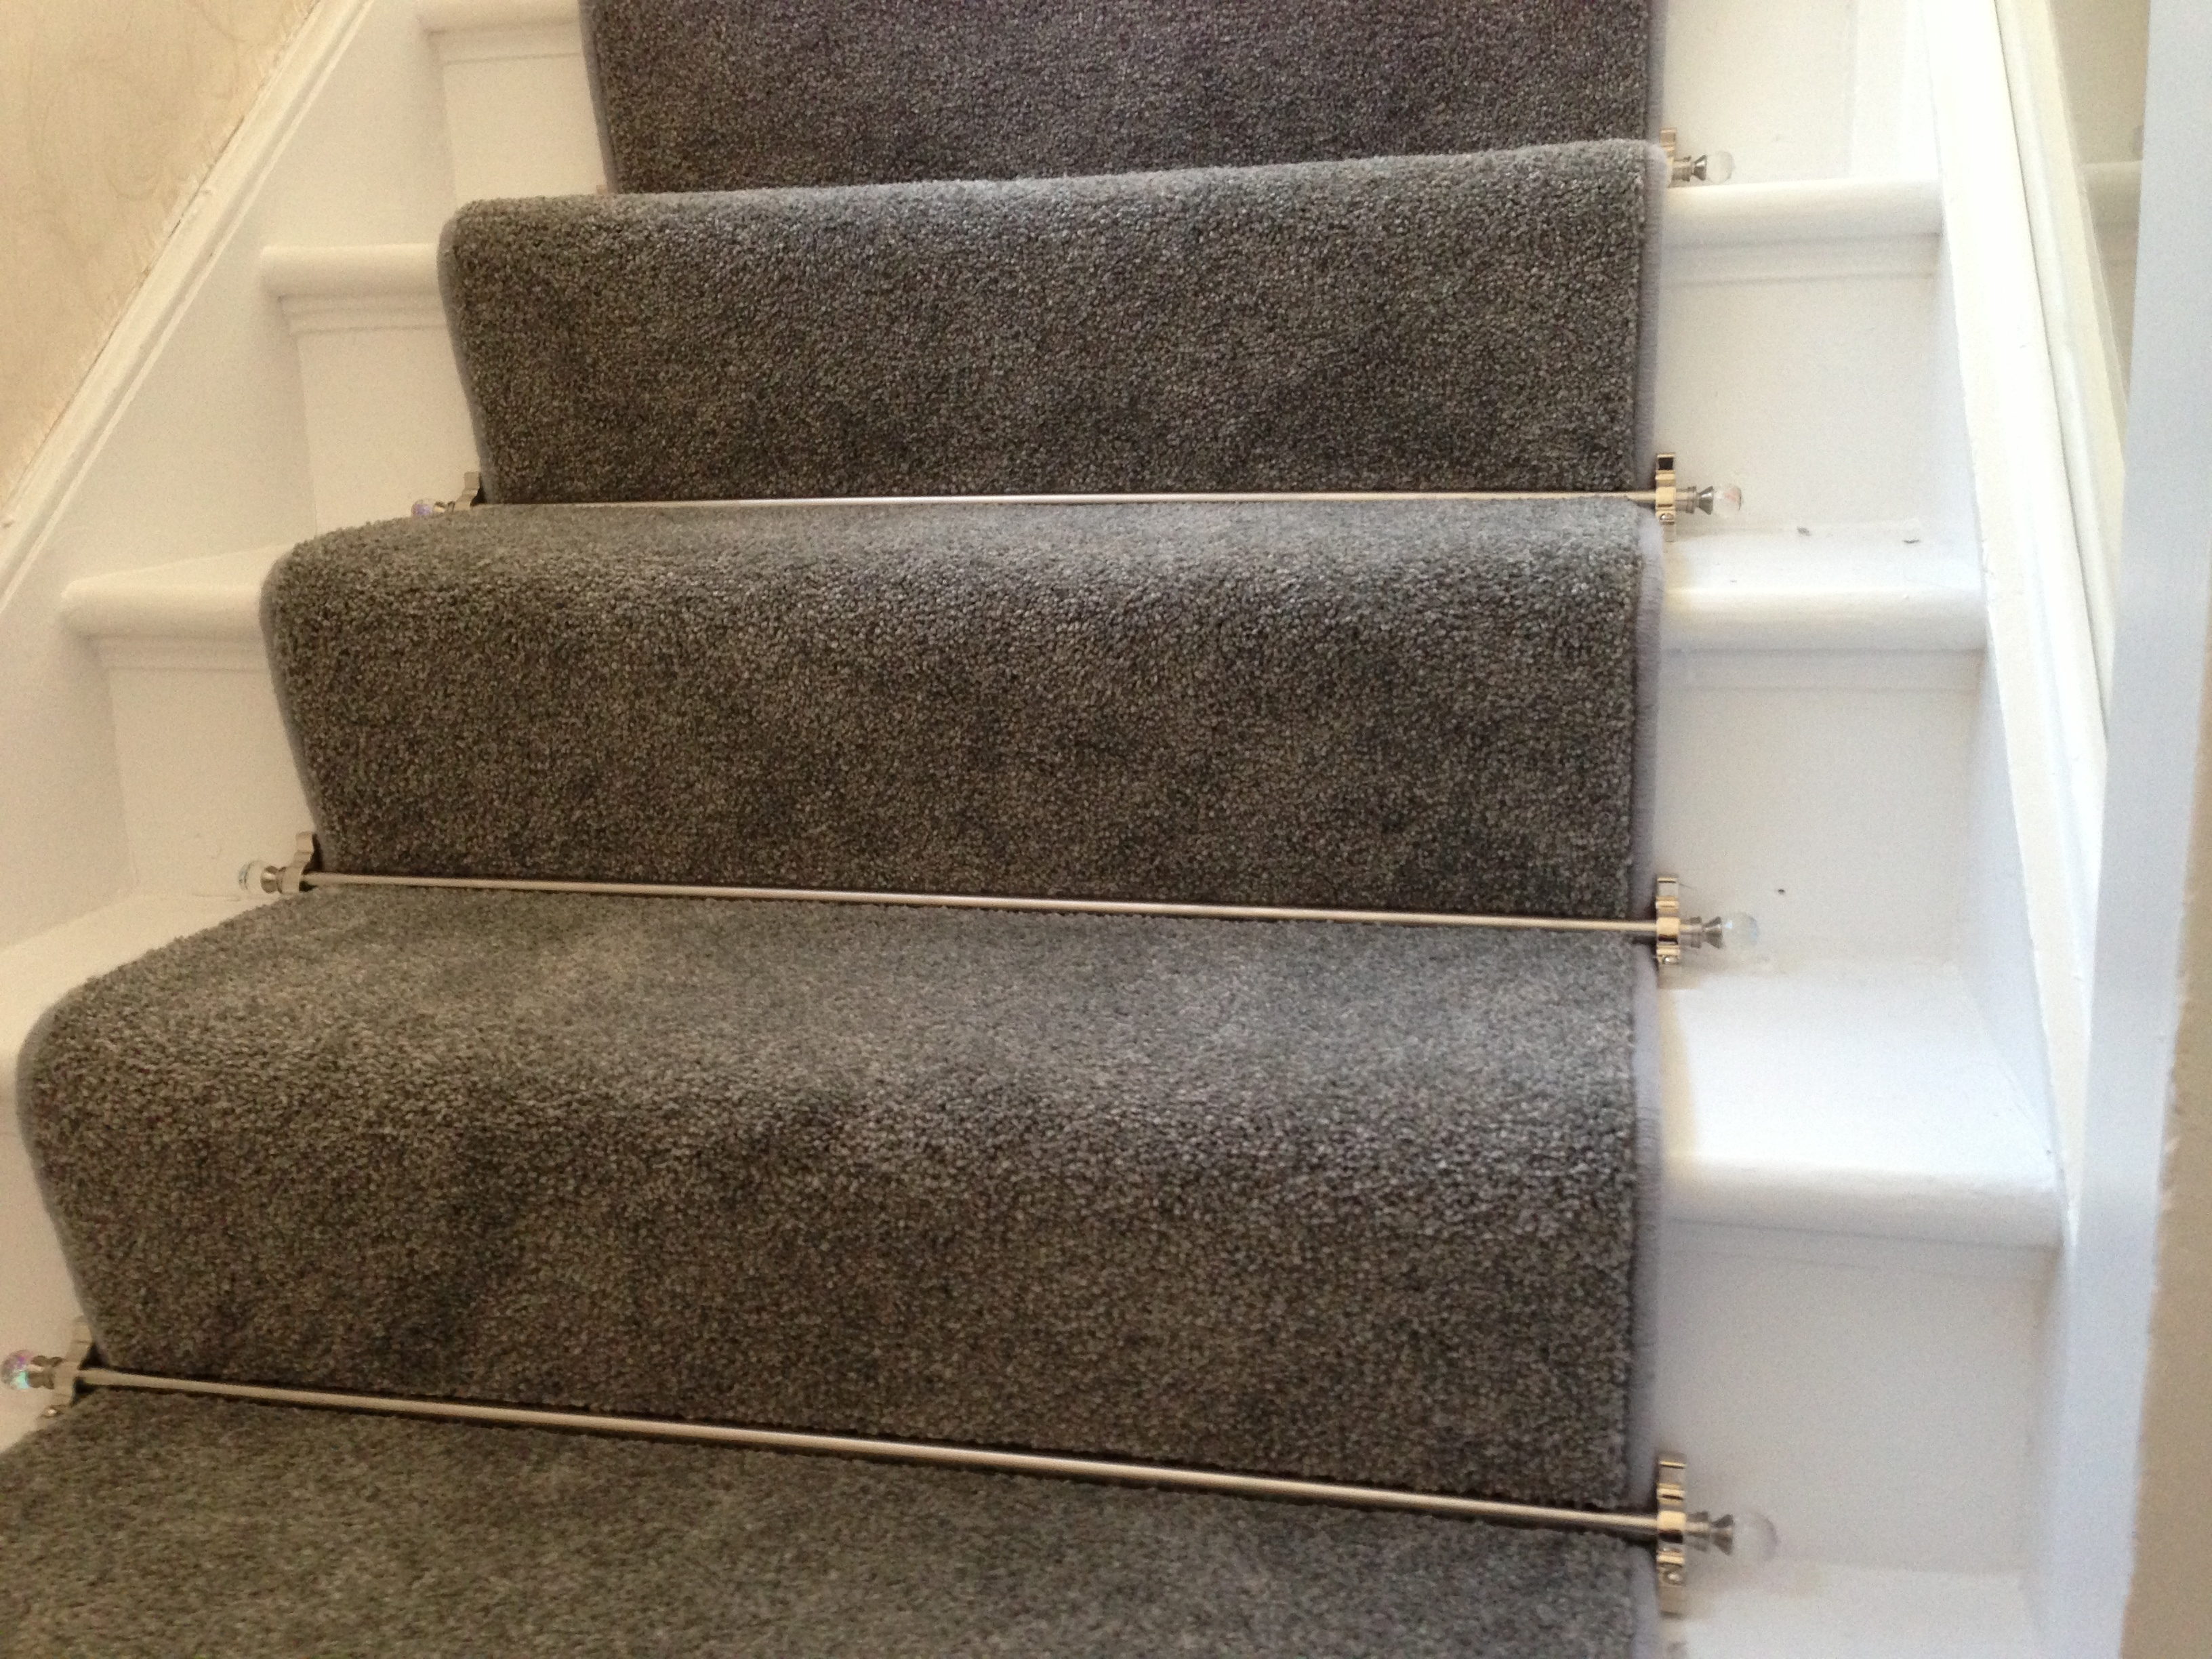 Stair Carpet Runner Avon Berry New Roger Oates Stairs Carpet With Regard To Wool Stair Rug Treads (Image 8 of 15)